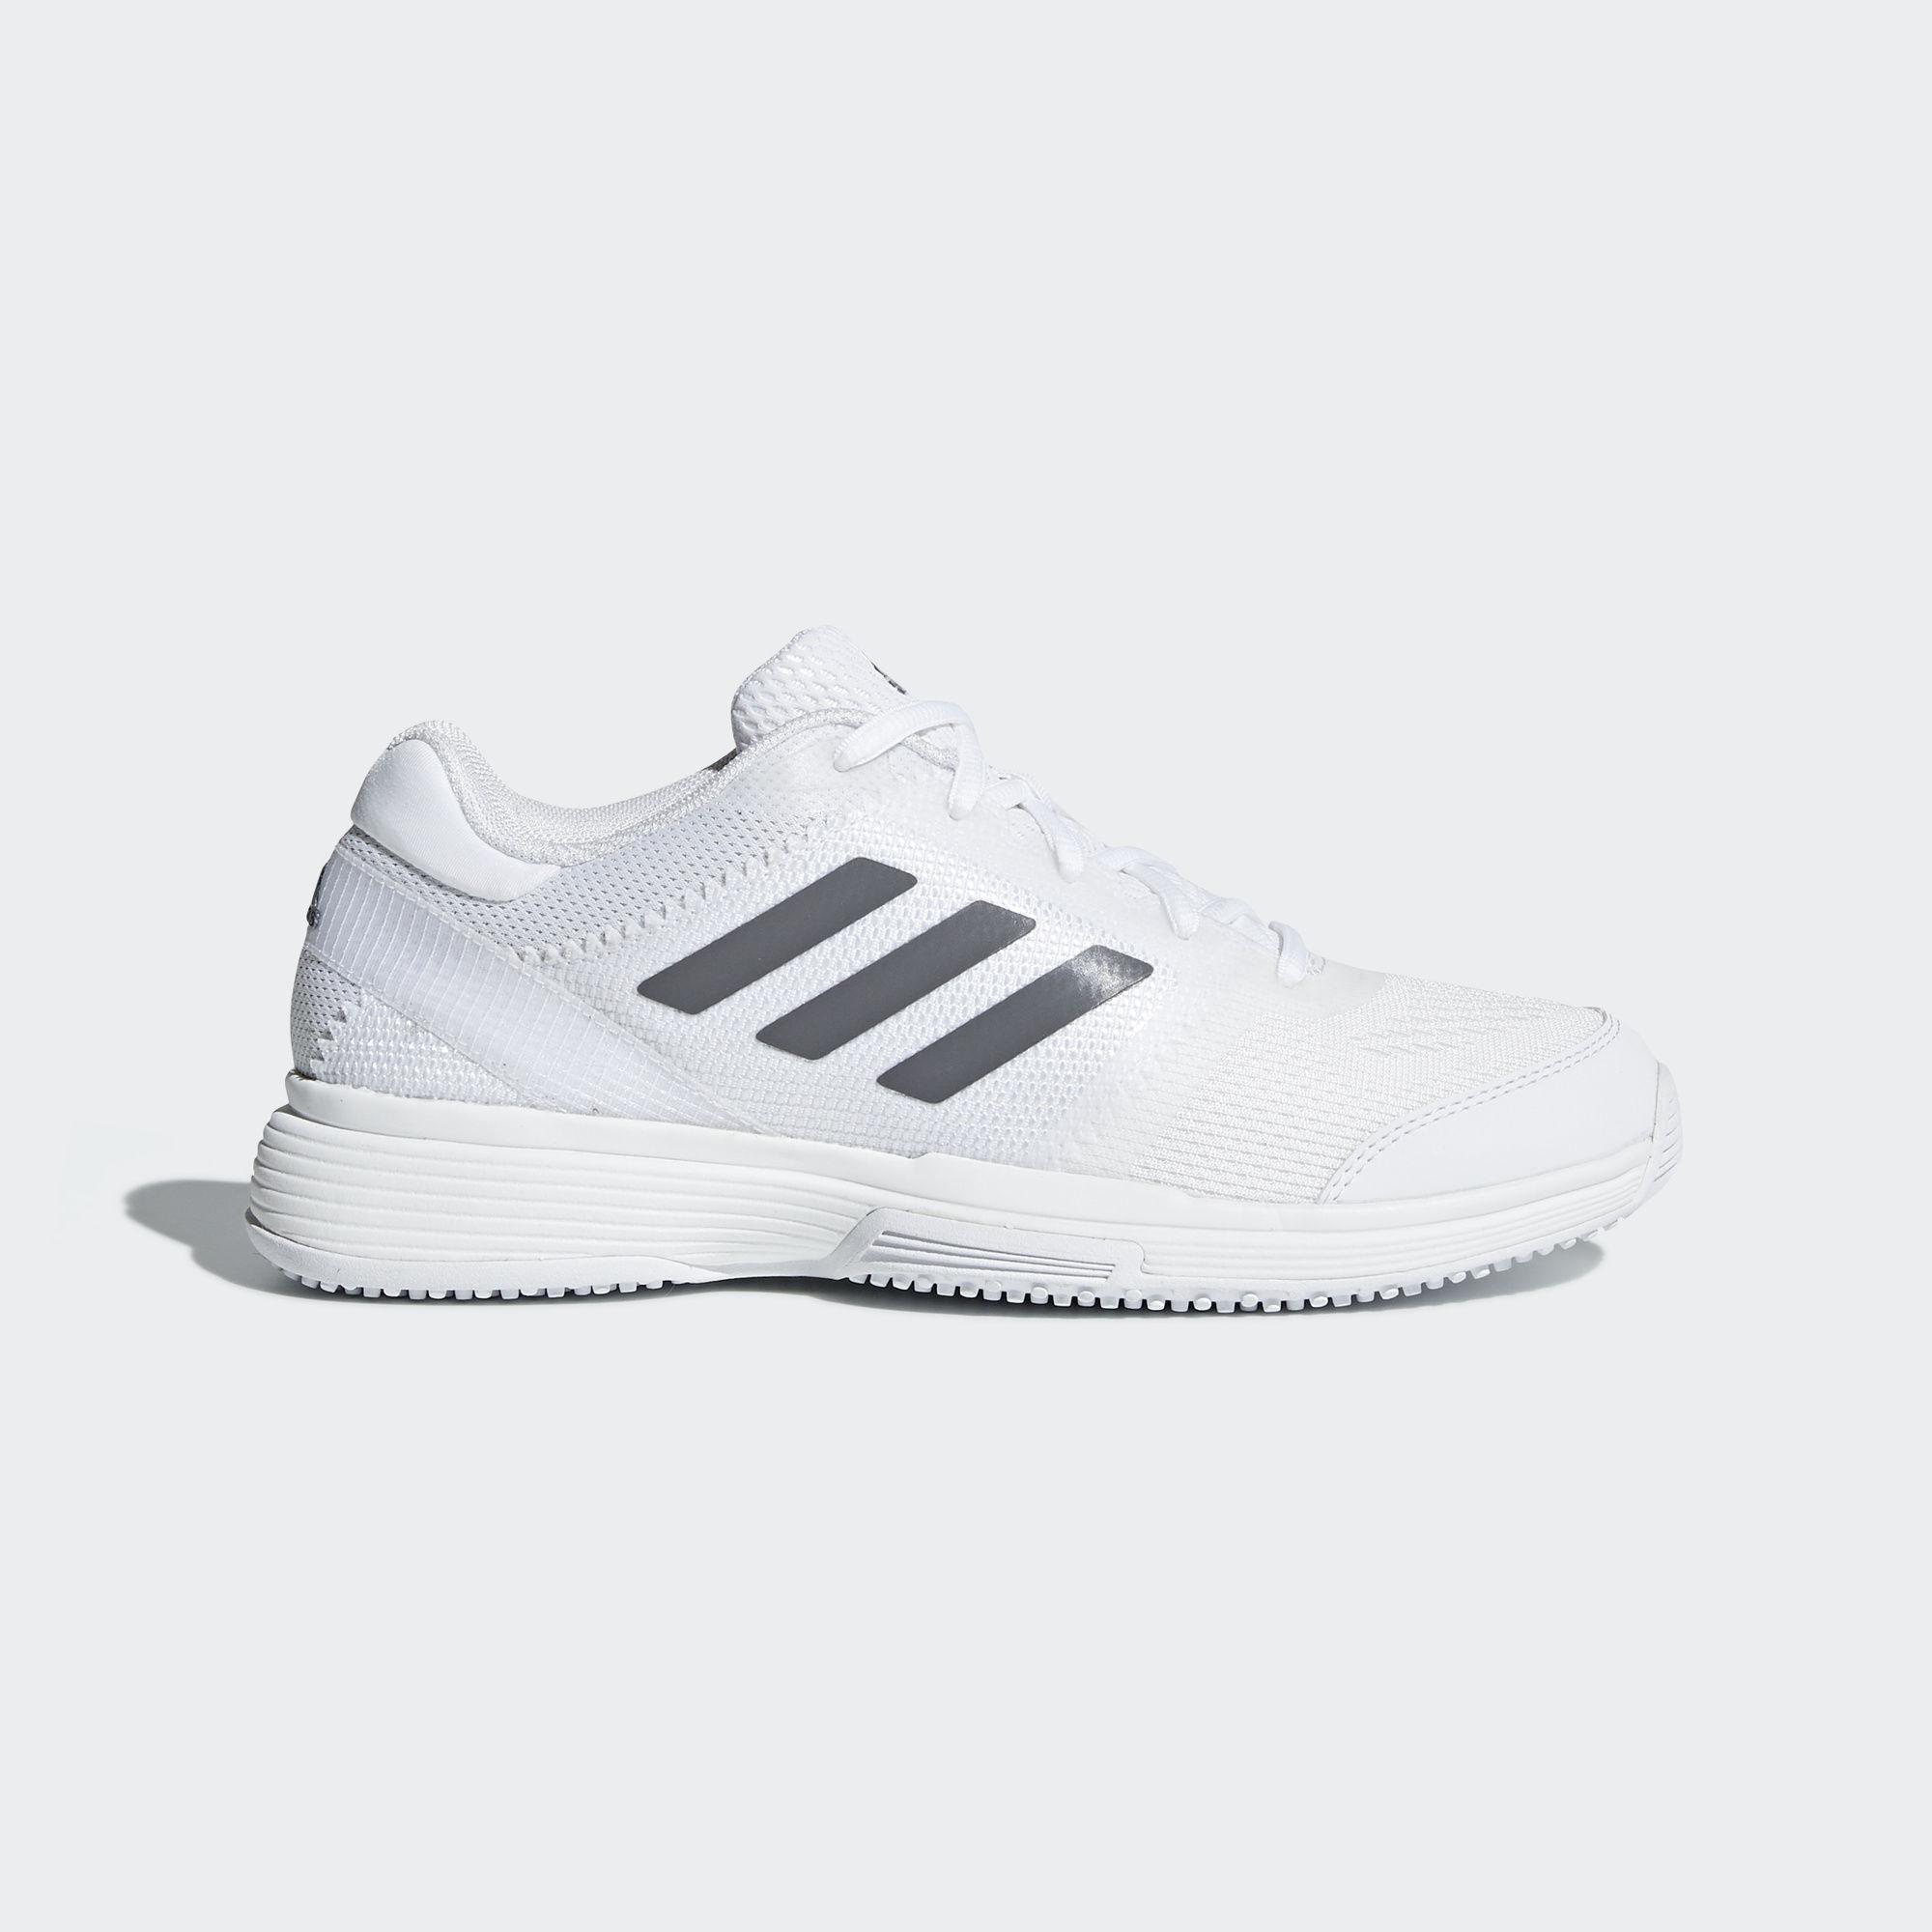 fde6c8e4e43b6f Adidas Womens Barricade 2018 Grass Court Tennis Shoes - White -  Tennisnuts.com